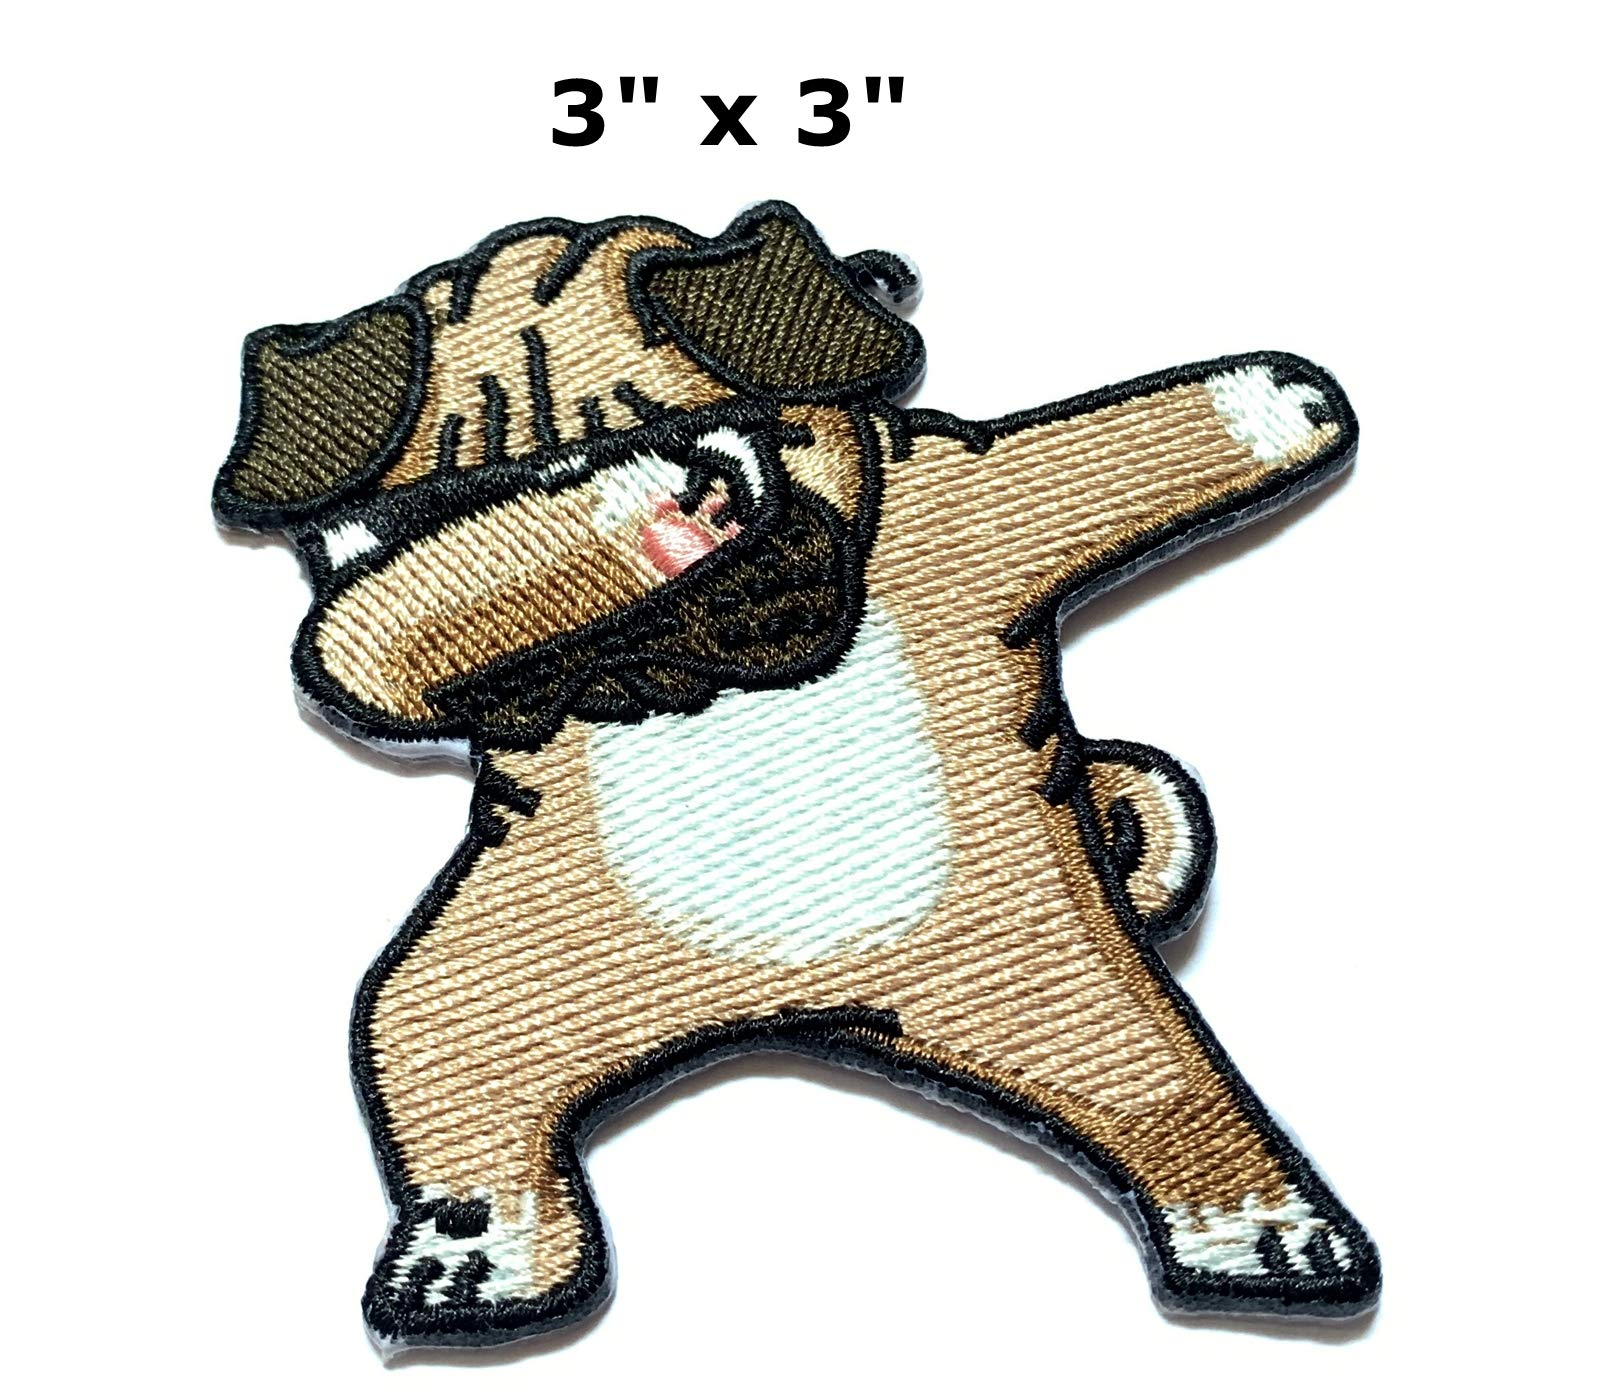 Iron on Patches#27,Dog Patches, Pug Dog Patches, Embroidered Patches, DIY Badge Patches, Appliques and Decorative Patches Clothing Backpacks Jeans T-Shirt Caps Cute Patch by BossBee